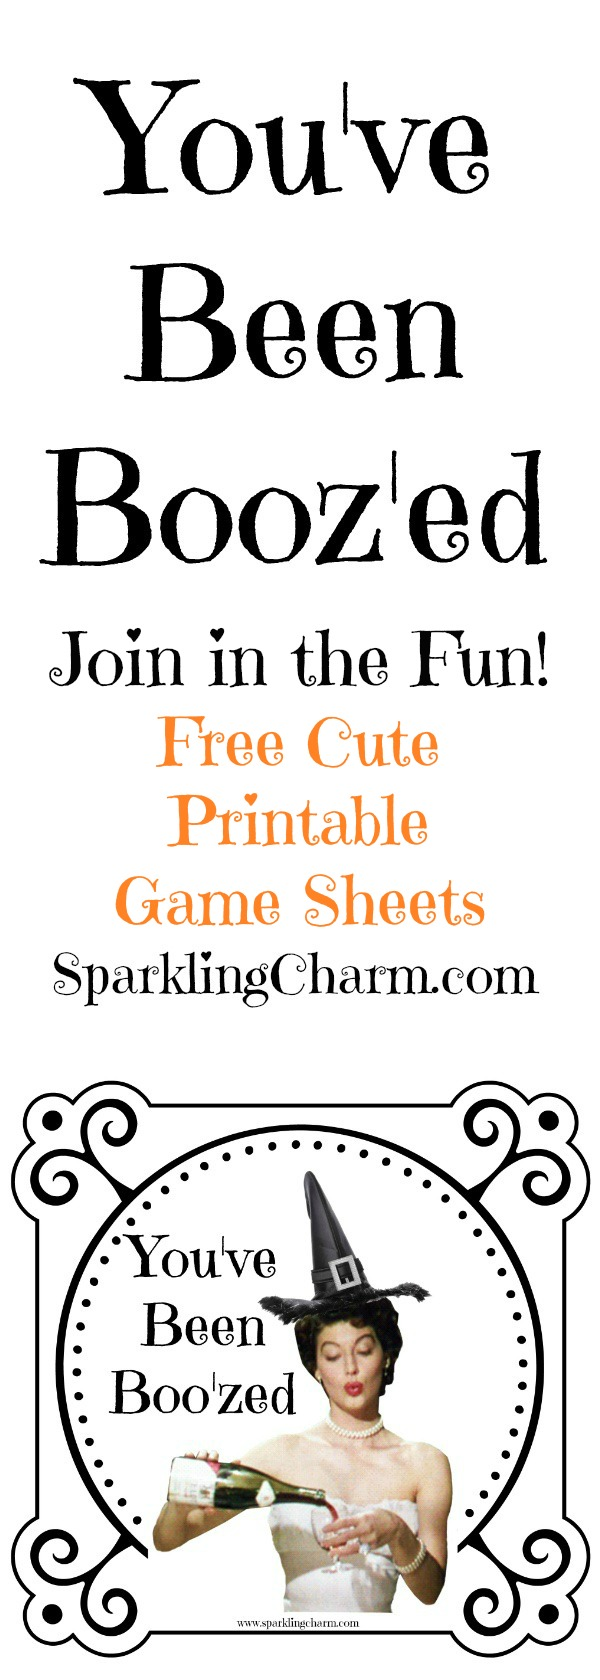 photograph about You've Been Boozed Printable identify Youve Been Booz-ed (No cost Printable Video game Sheets) - Glowing